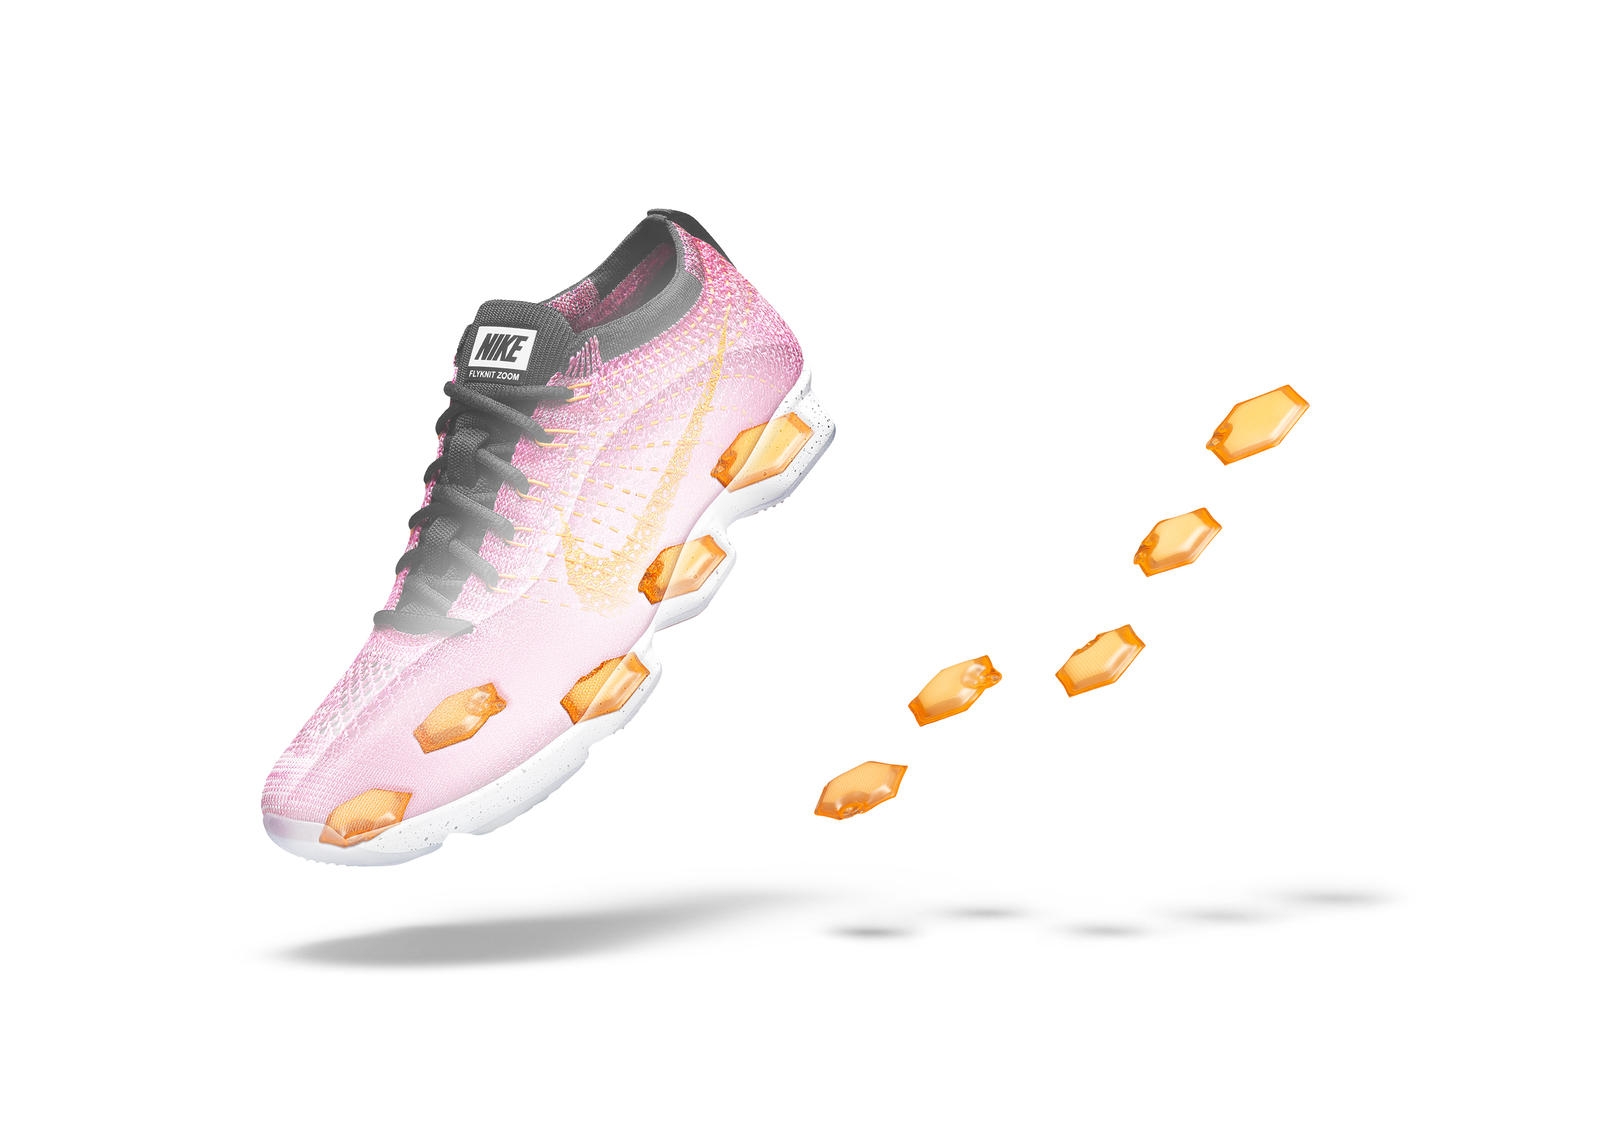 11a5ccd2 Nike Zoom Air: The Technology of Fast - Nike News